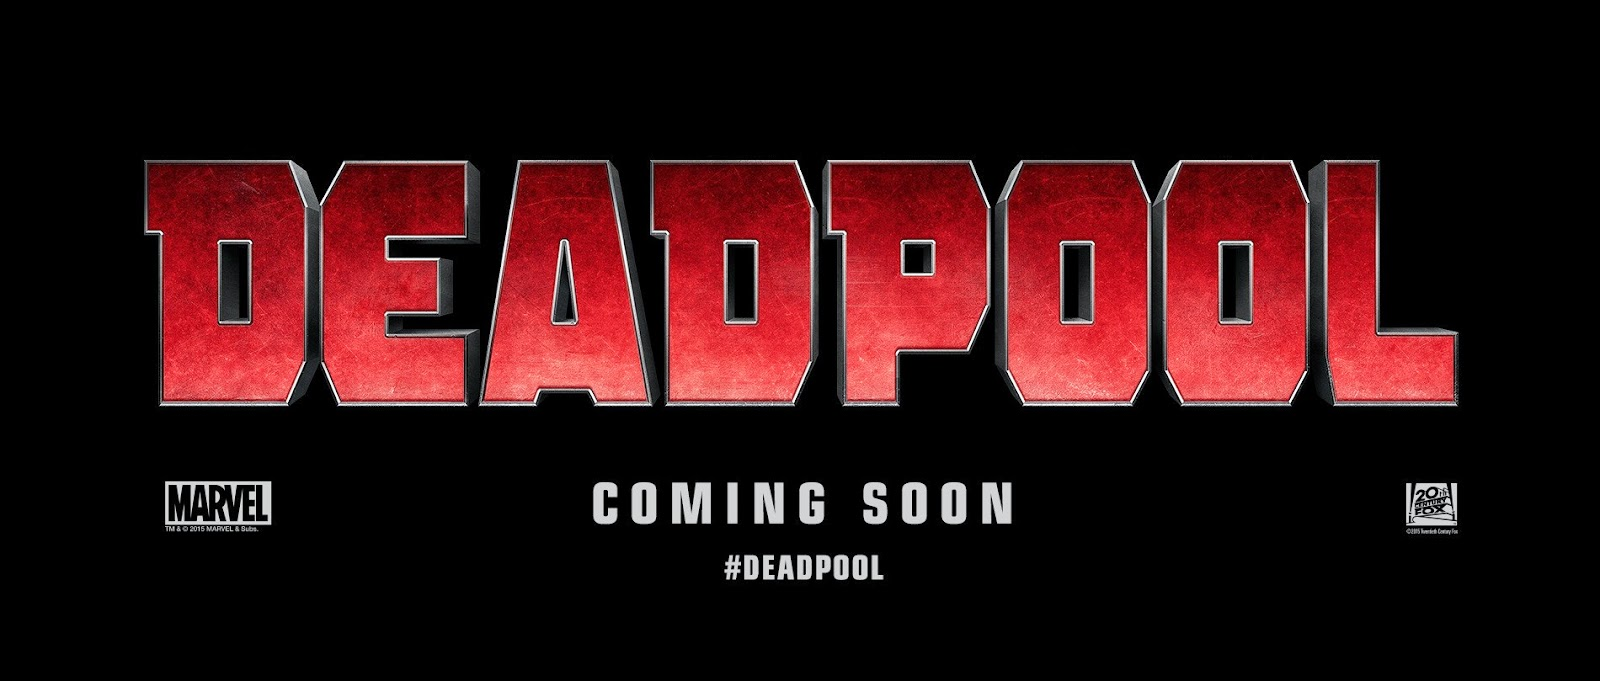 Official movie logo for the 2016 movie Deadpool starring Ryan Reynolds.